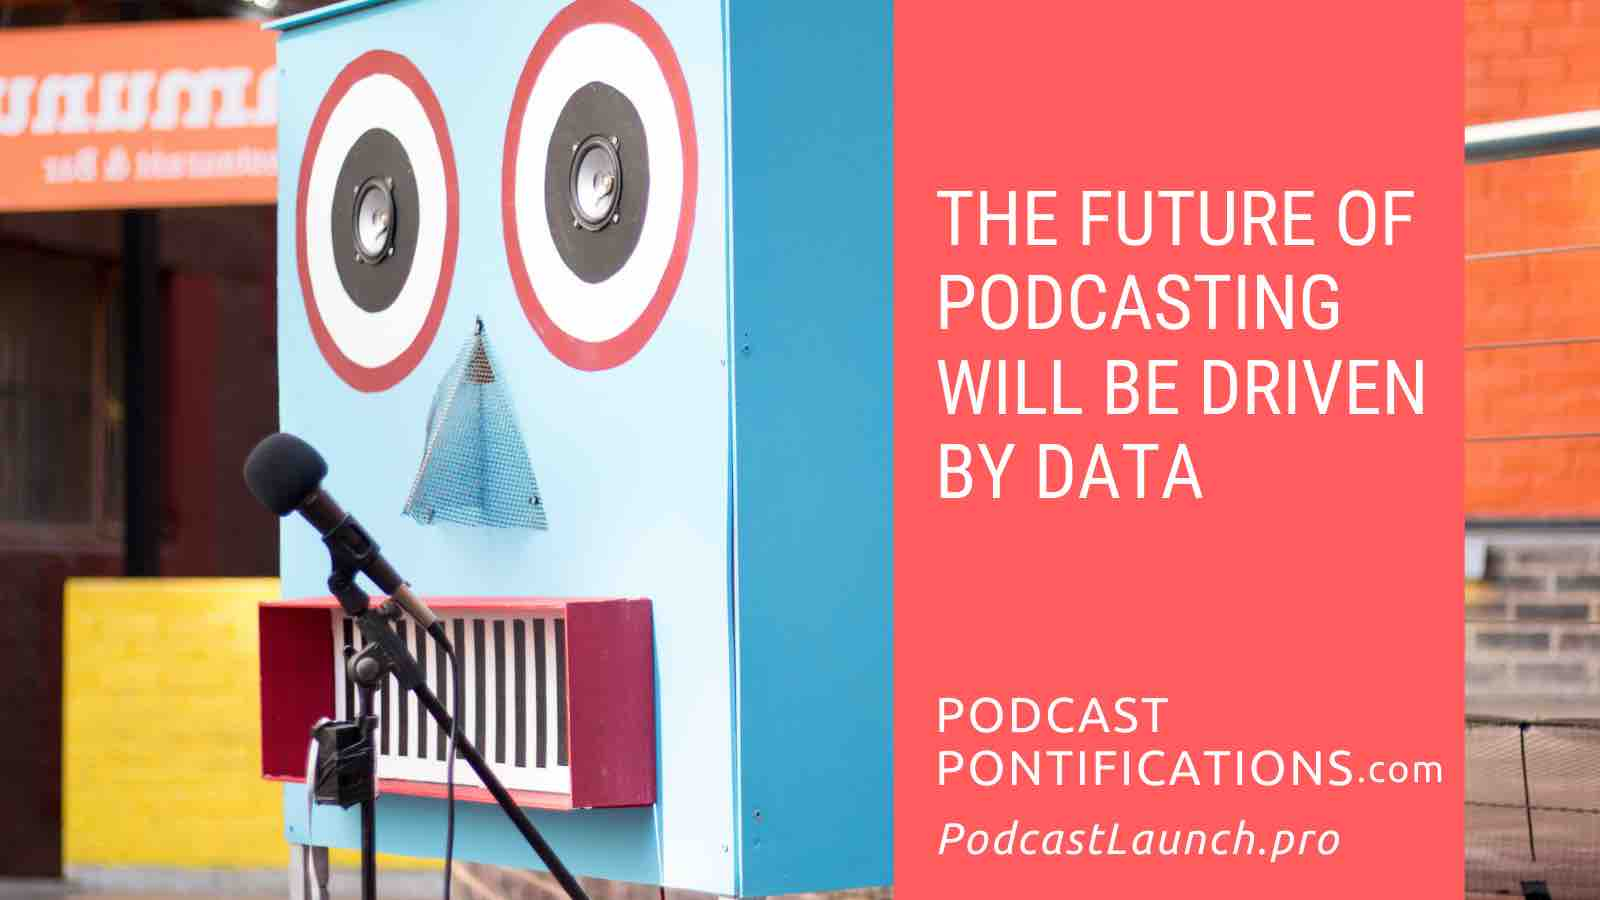 The Future of Podcasting Will Be Driven By Data